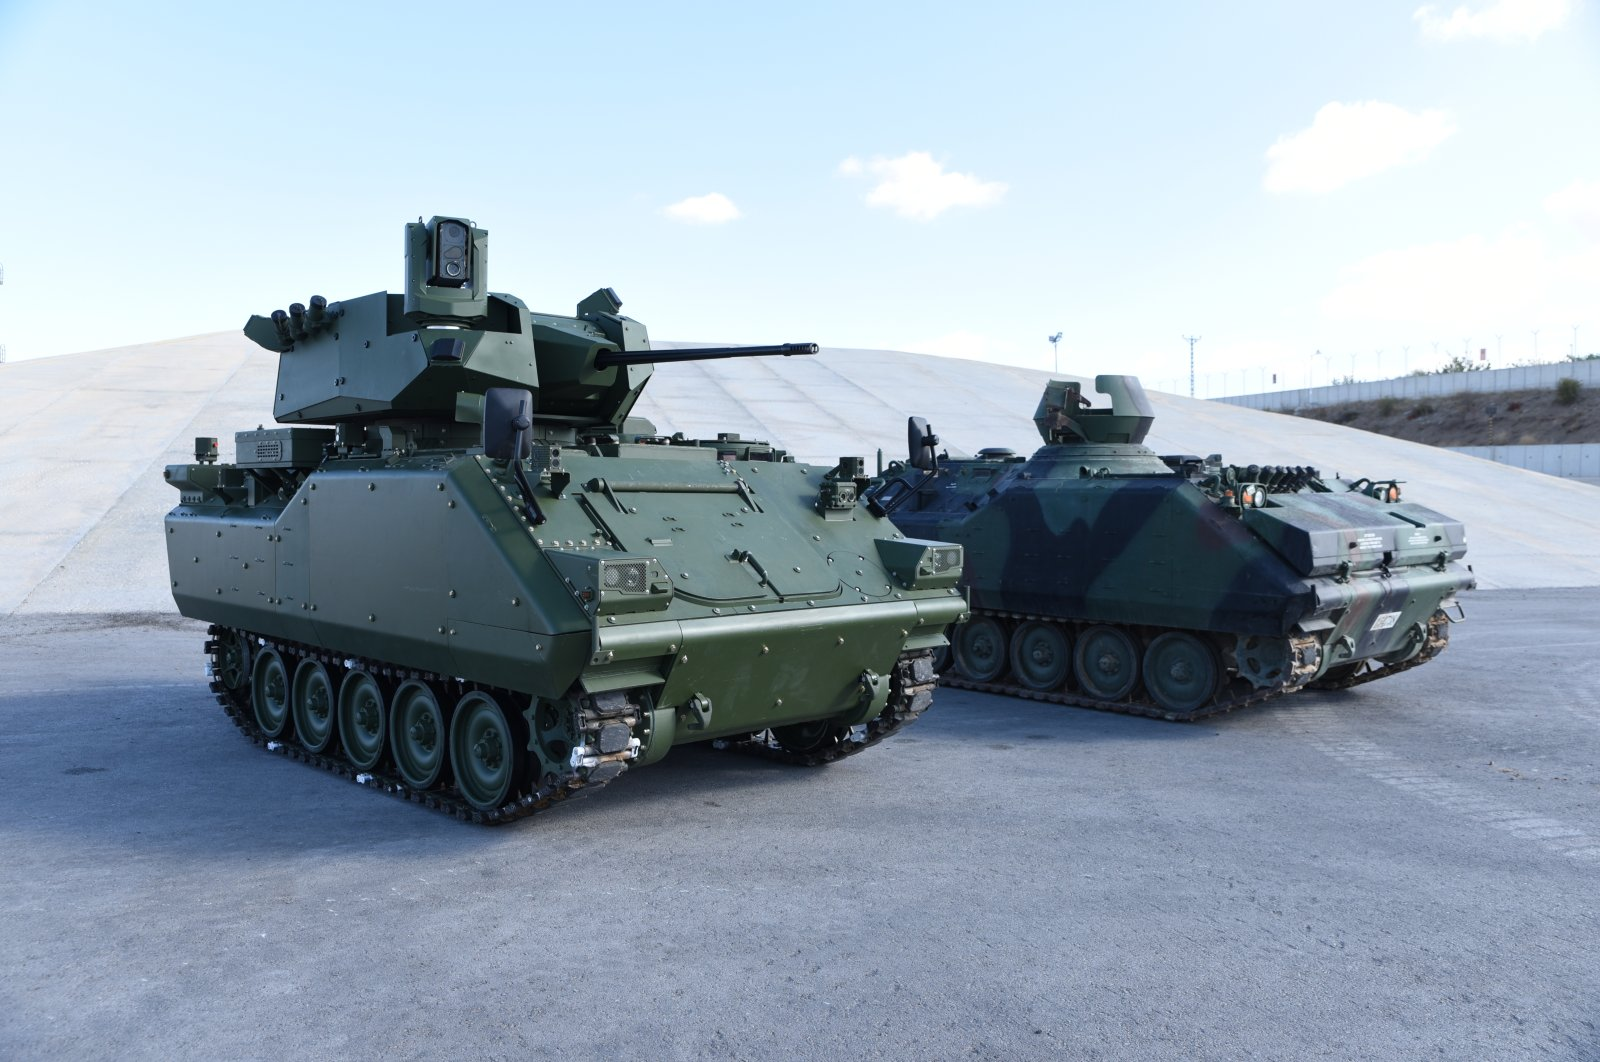 Prototypes of armored combat vehicles that are being modernized as part of joint project by two Turkish defense firms, Oct. 14, 2020. (Photo by the SSB via AA)